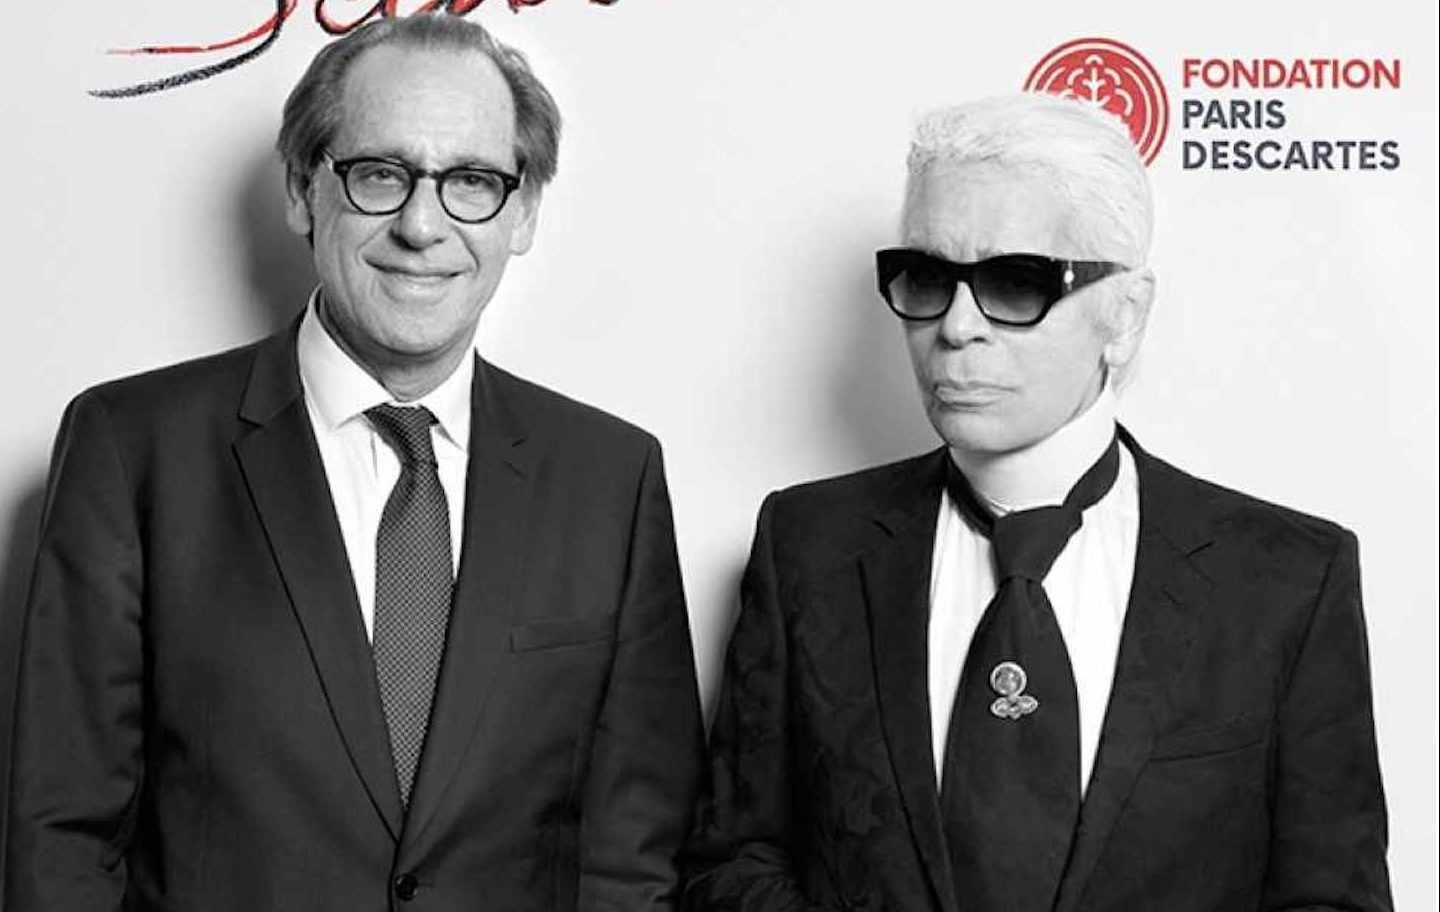 beneficenza - karl lagerfeld